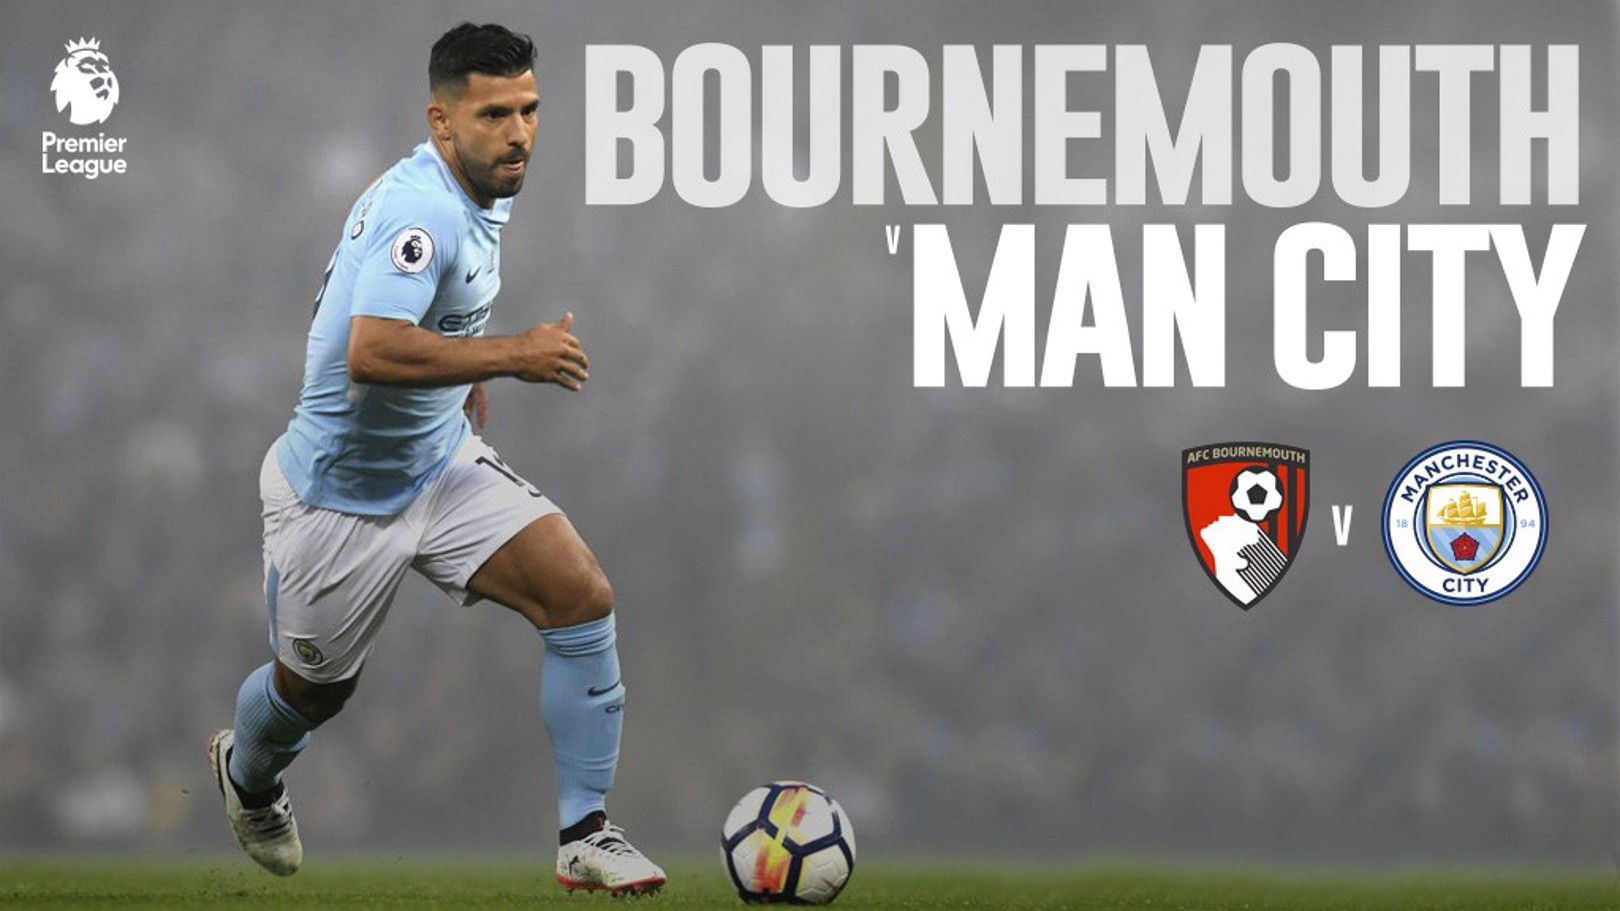 Bournemouth - Manchester City